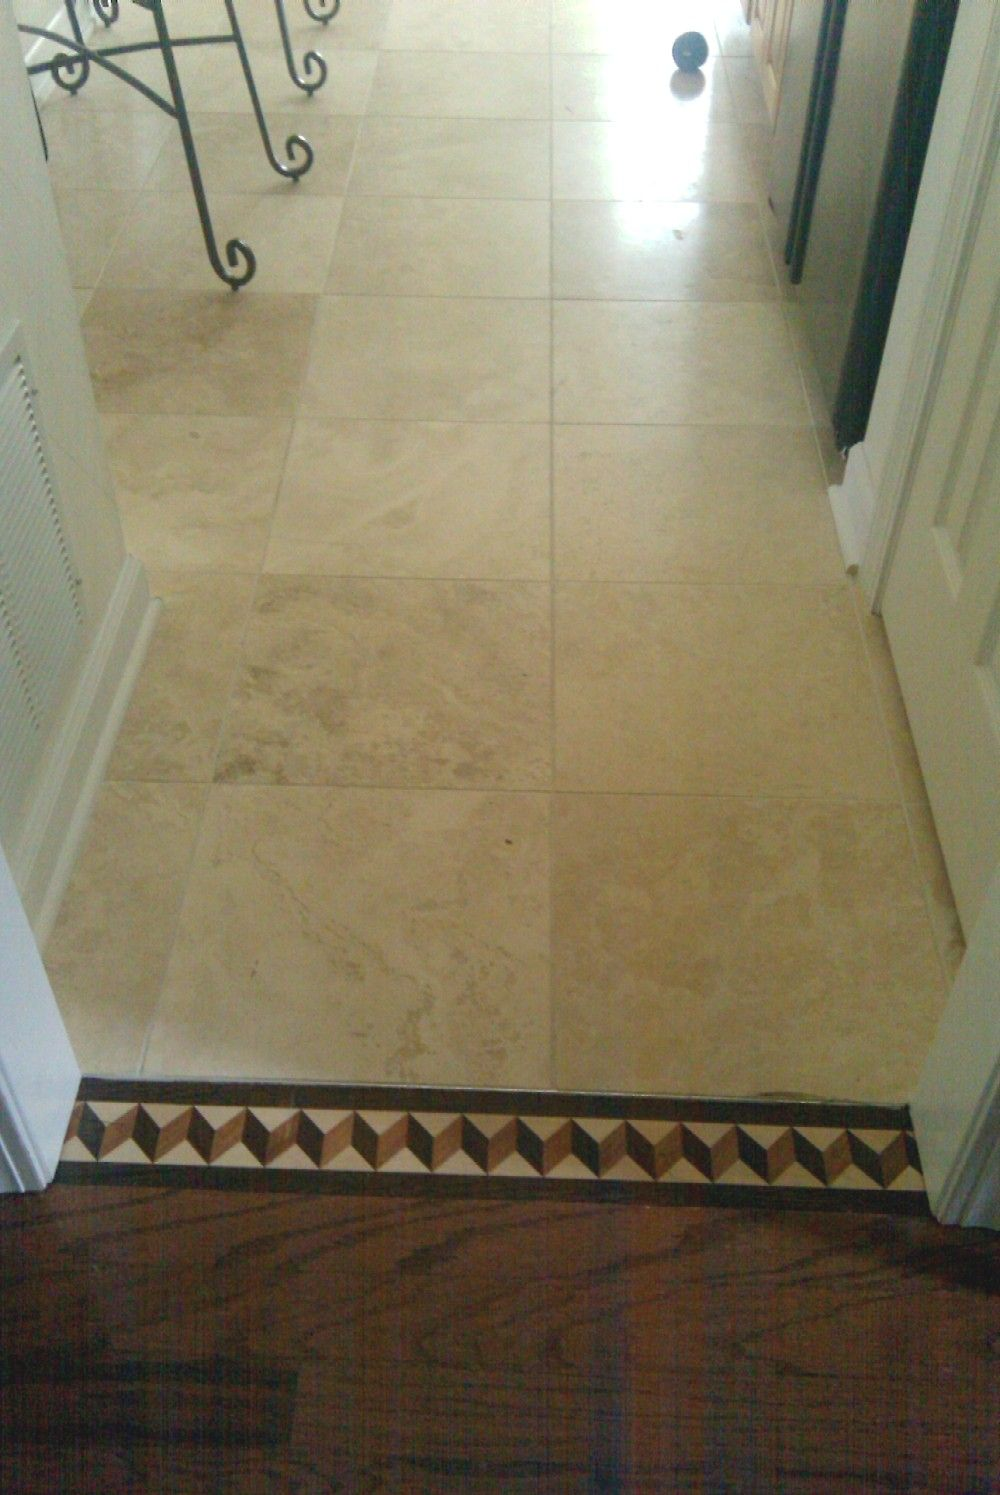 Border Transition From Wood Floor To Tile Flooring Renovations Pinterest Woods Tile Wood